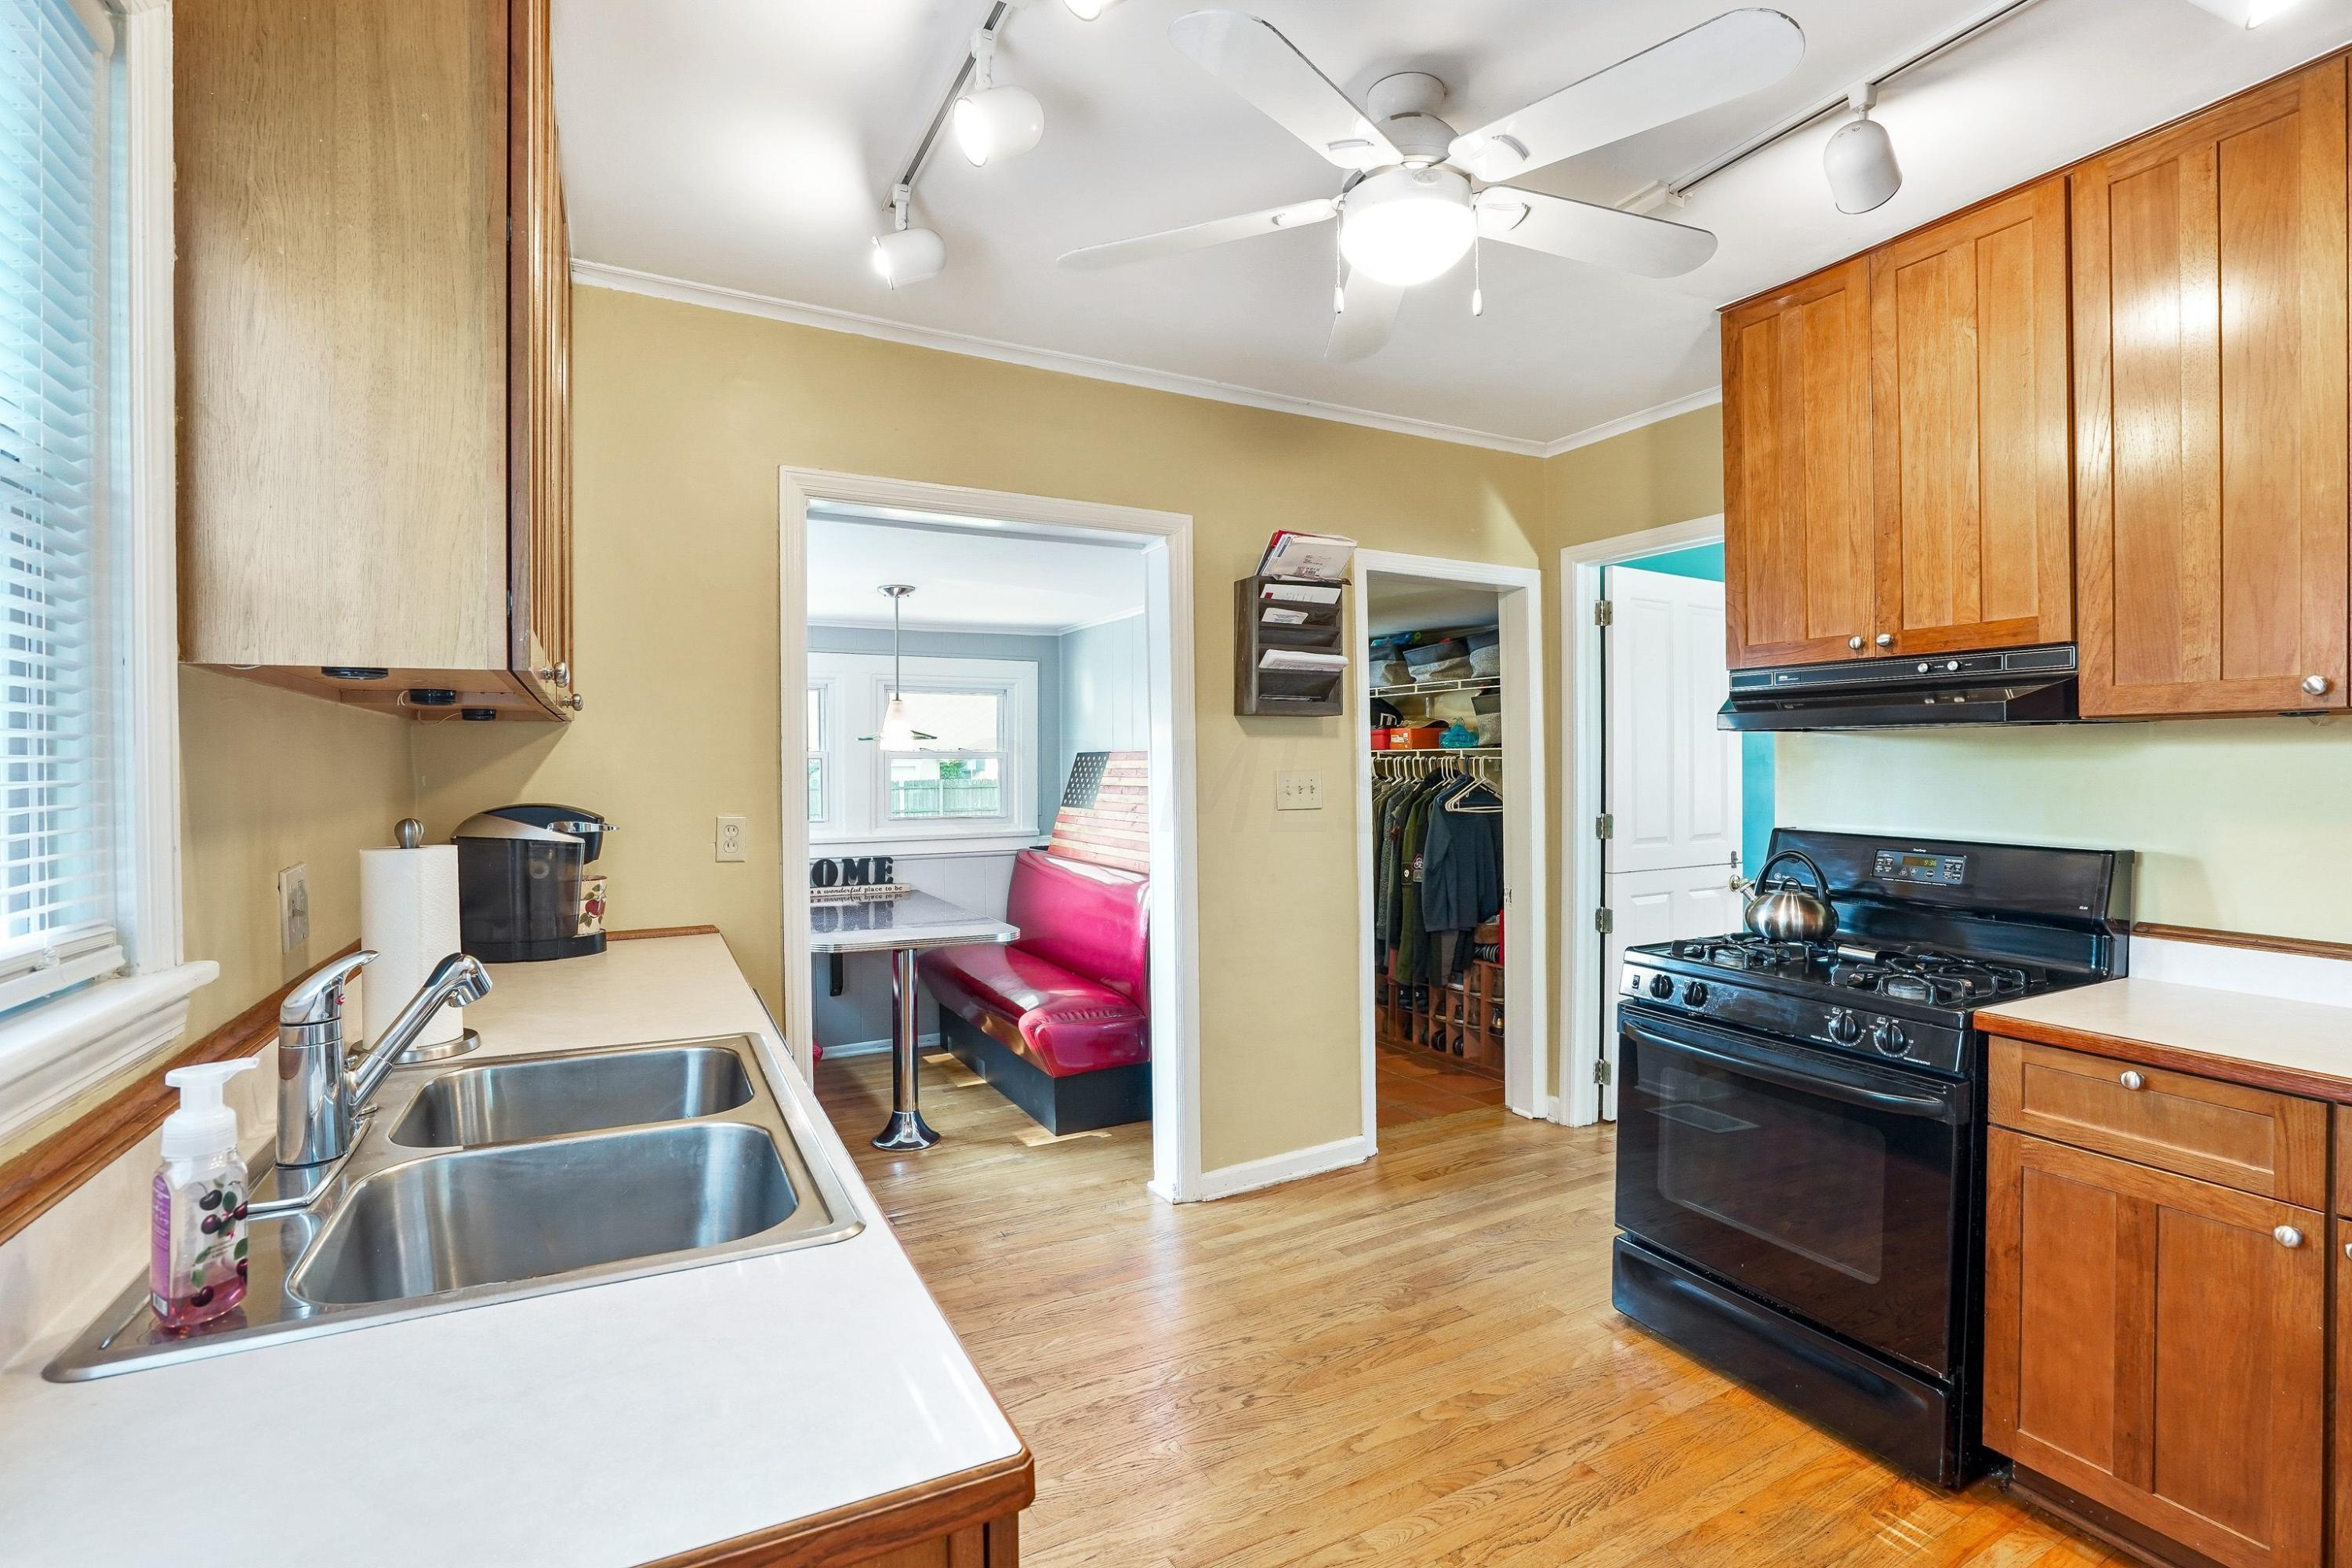 921 Chambers - Kitchen - Eat-In area